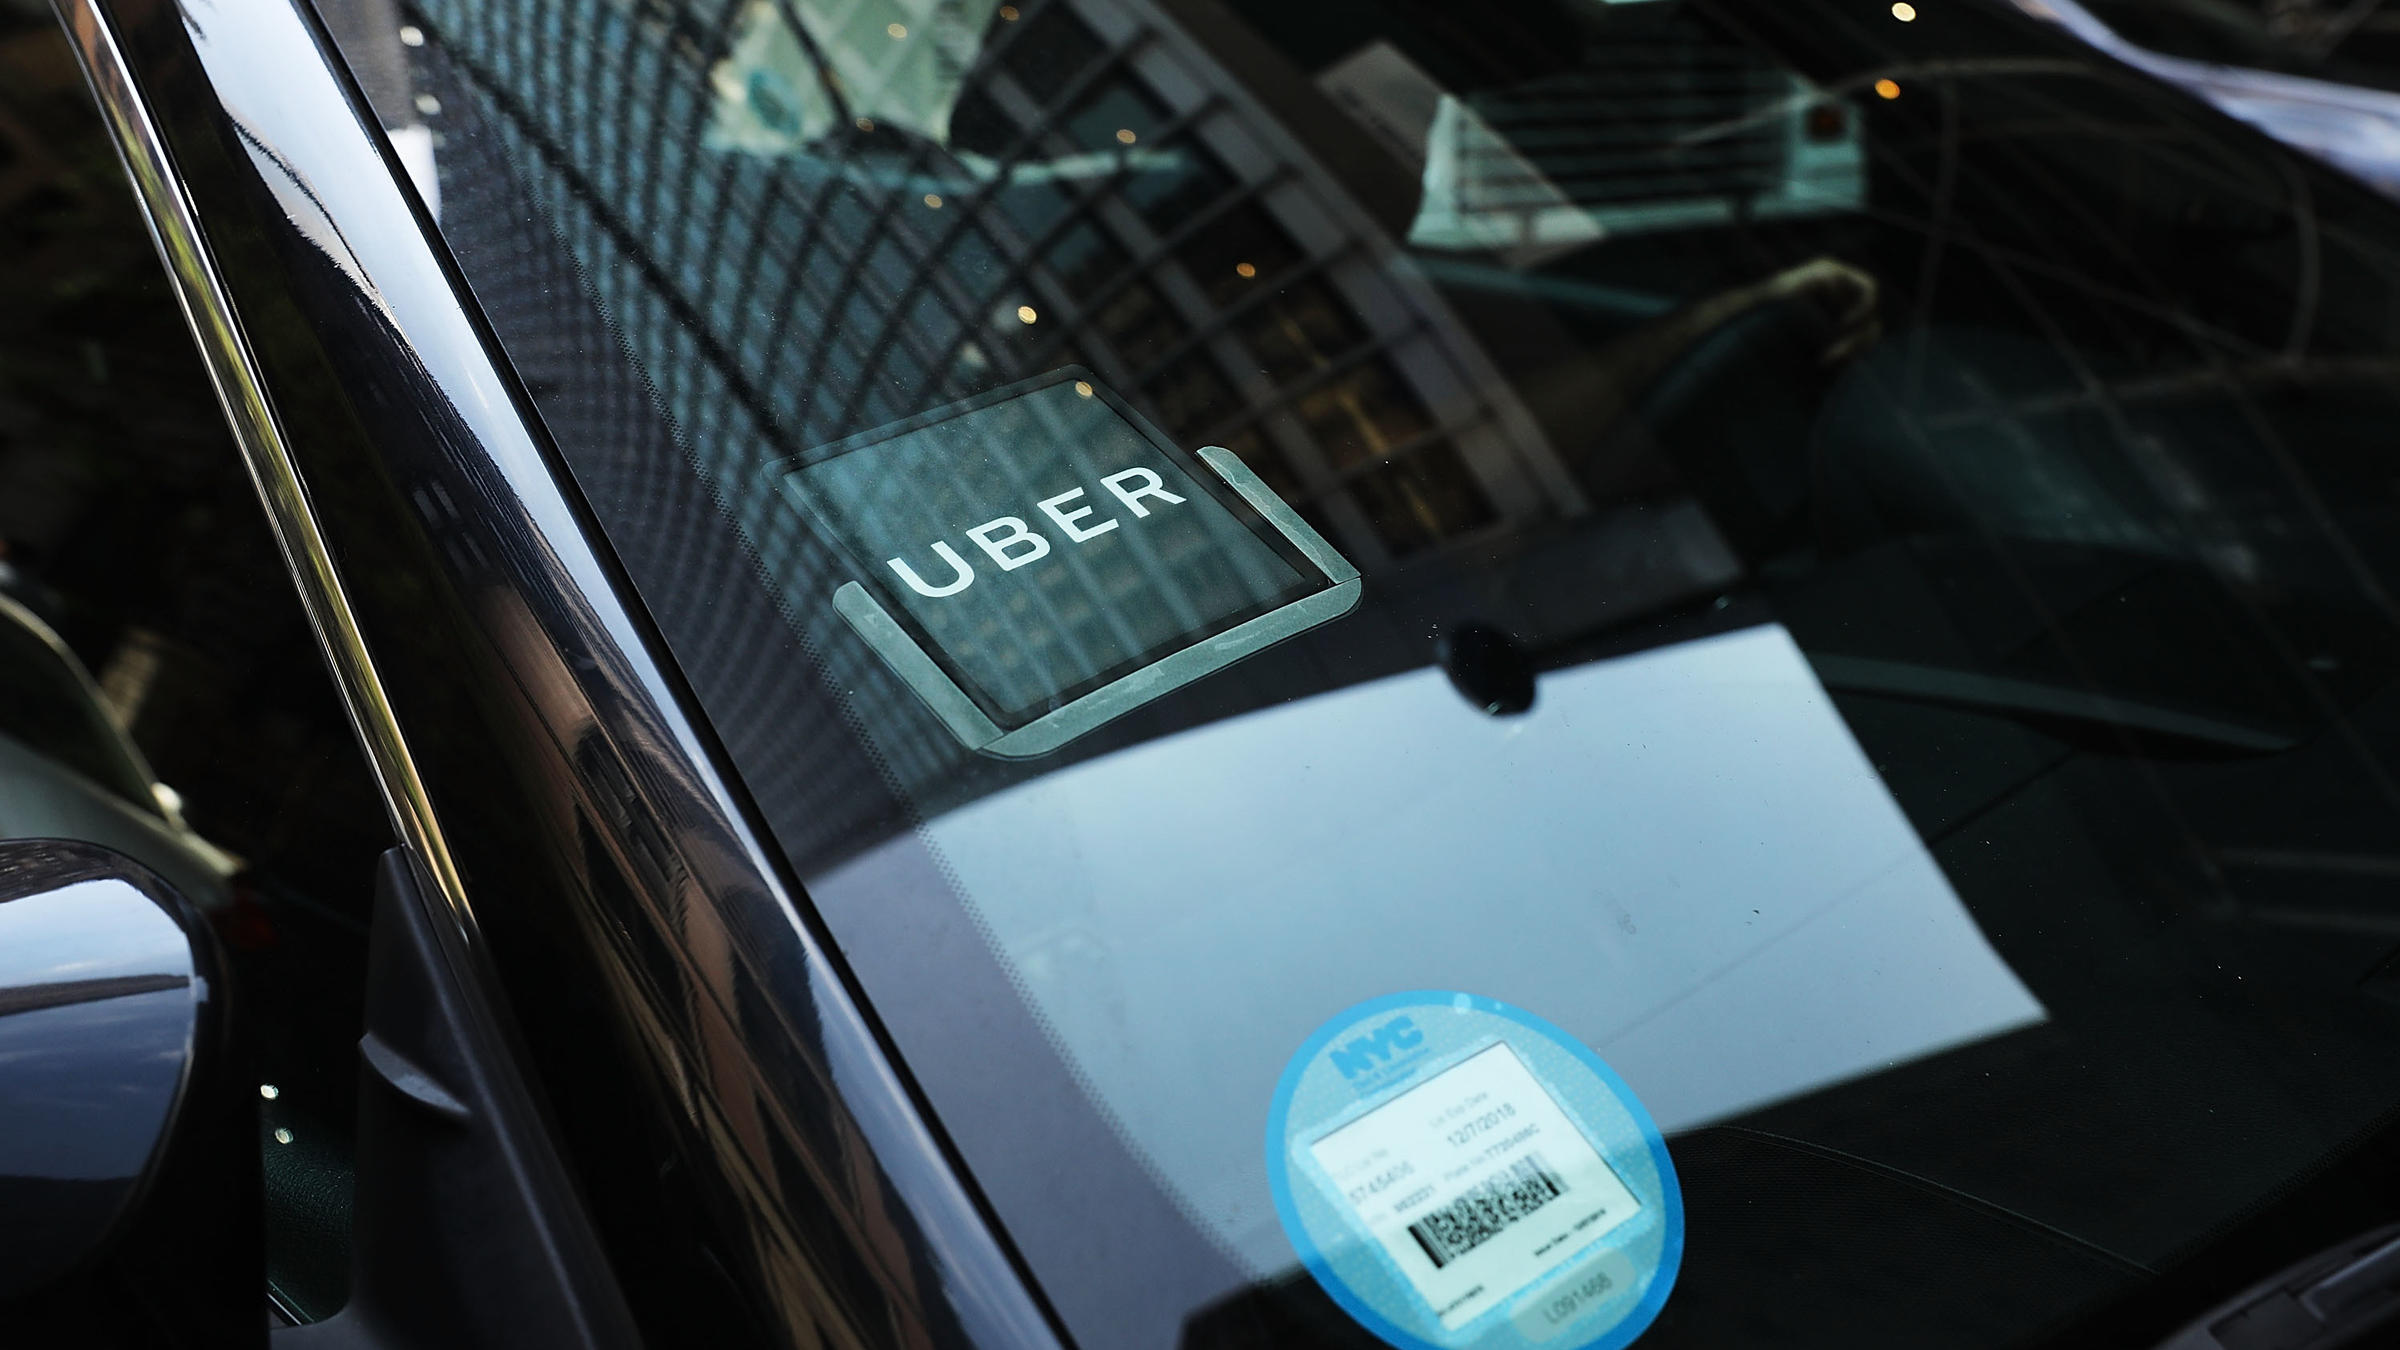 Uber, Lyft drivers make US$3.37 per hour